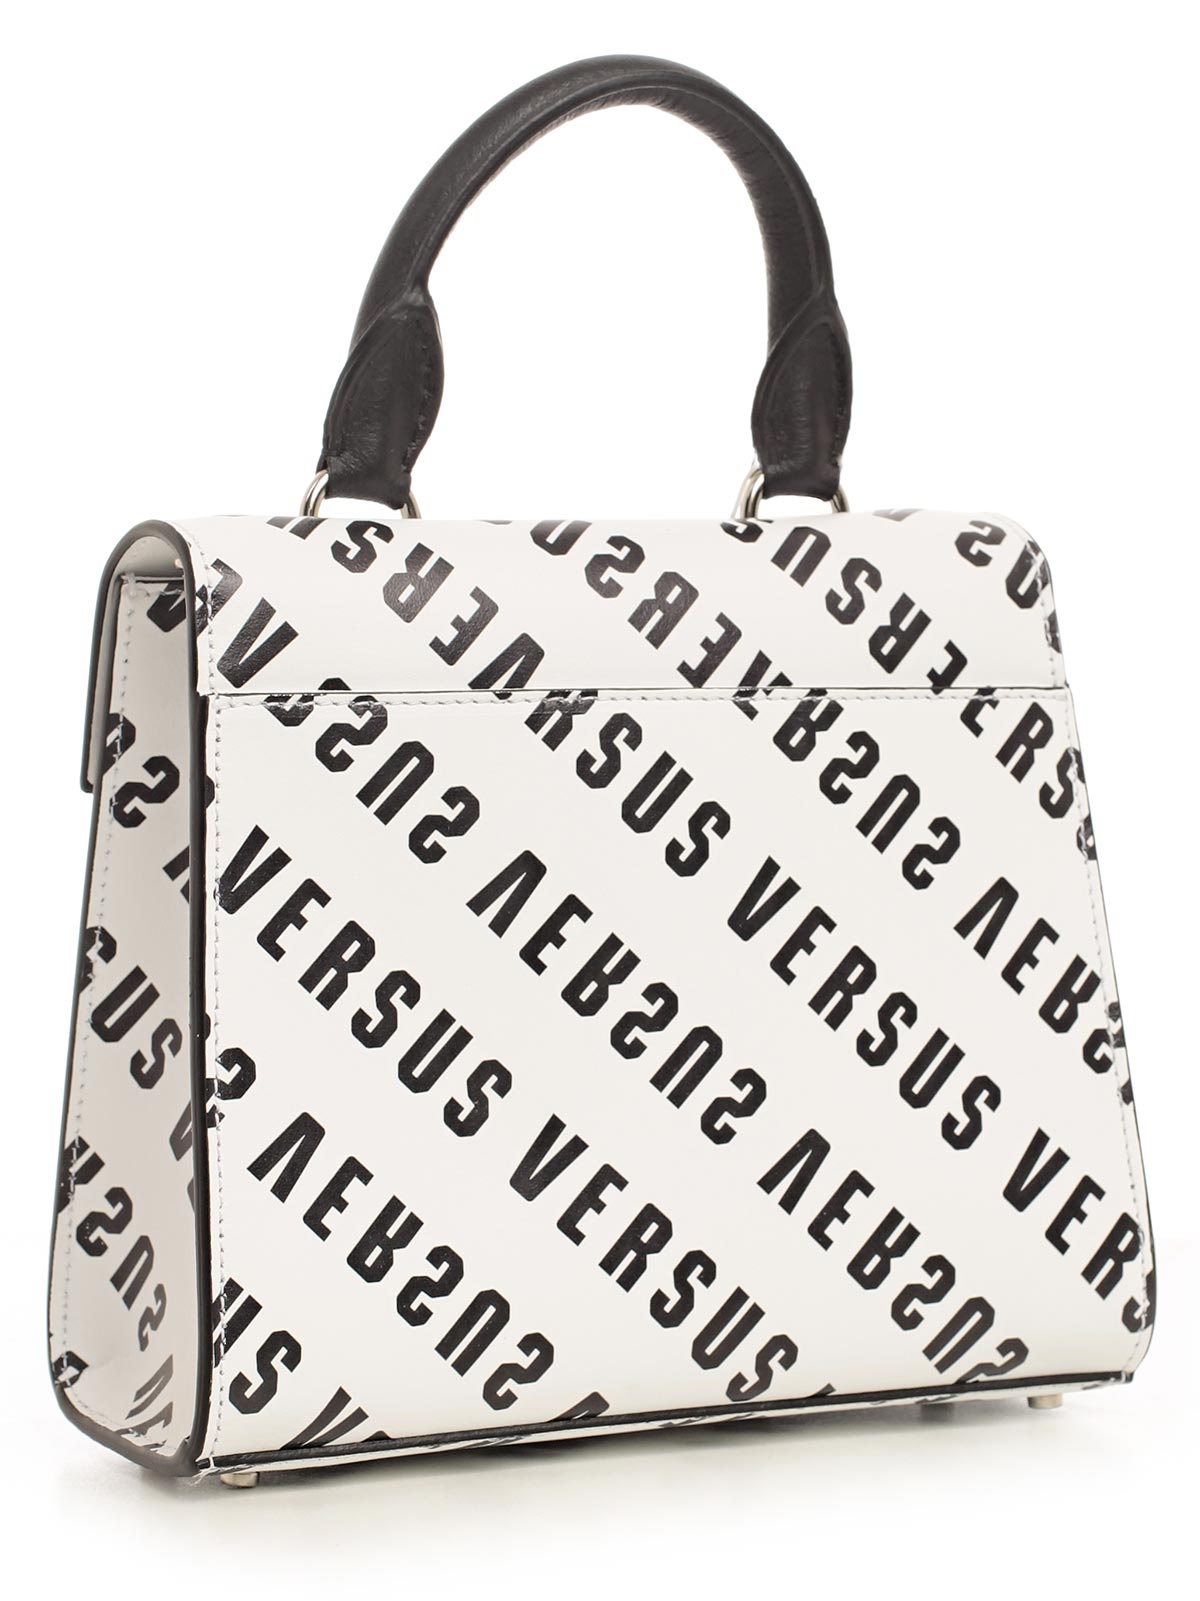 Picture of Versus Versace Bags